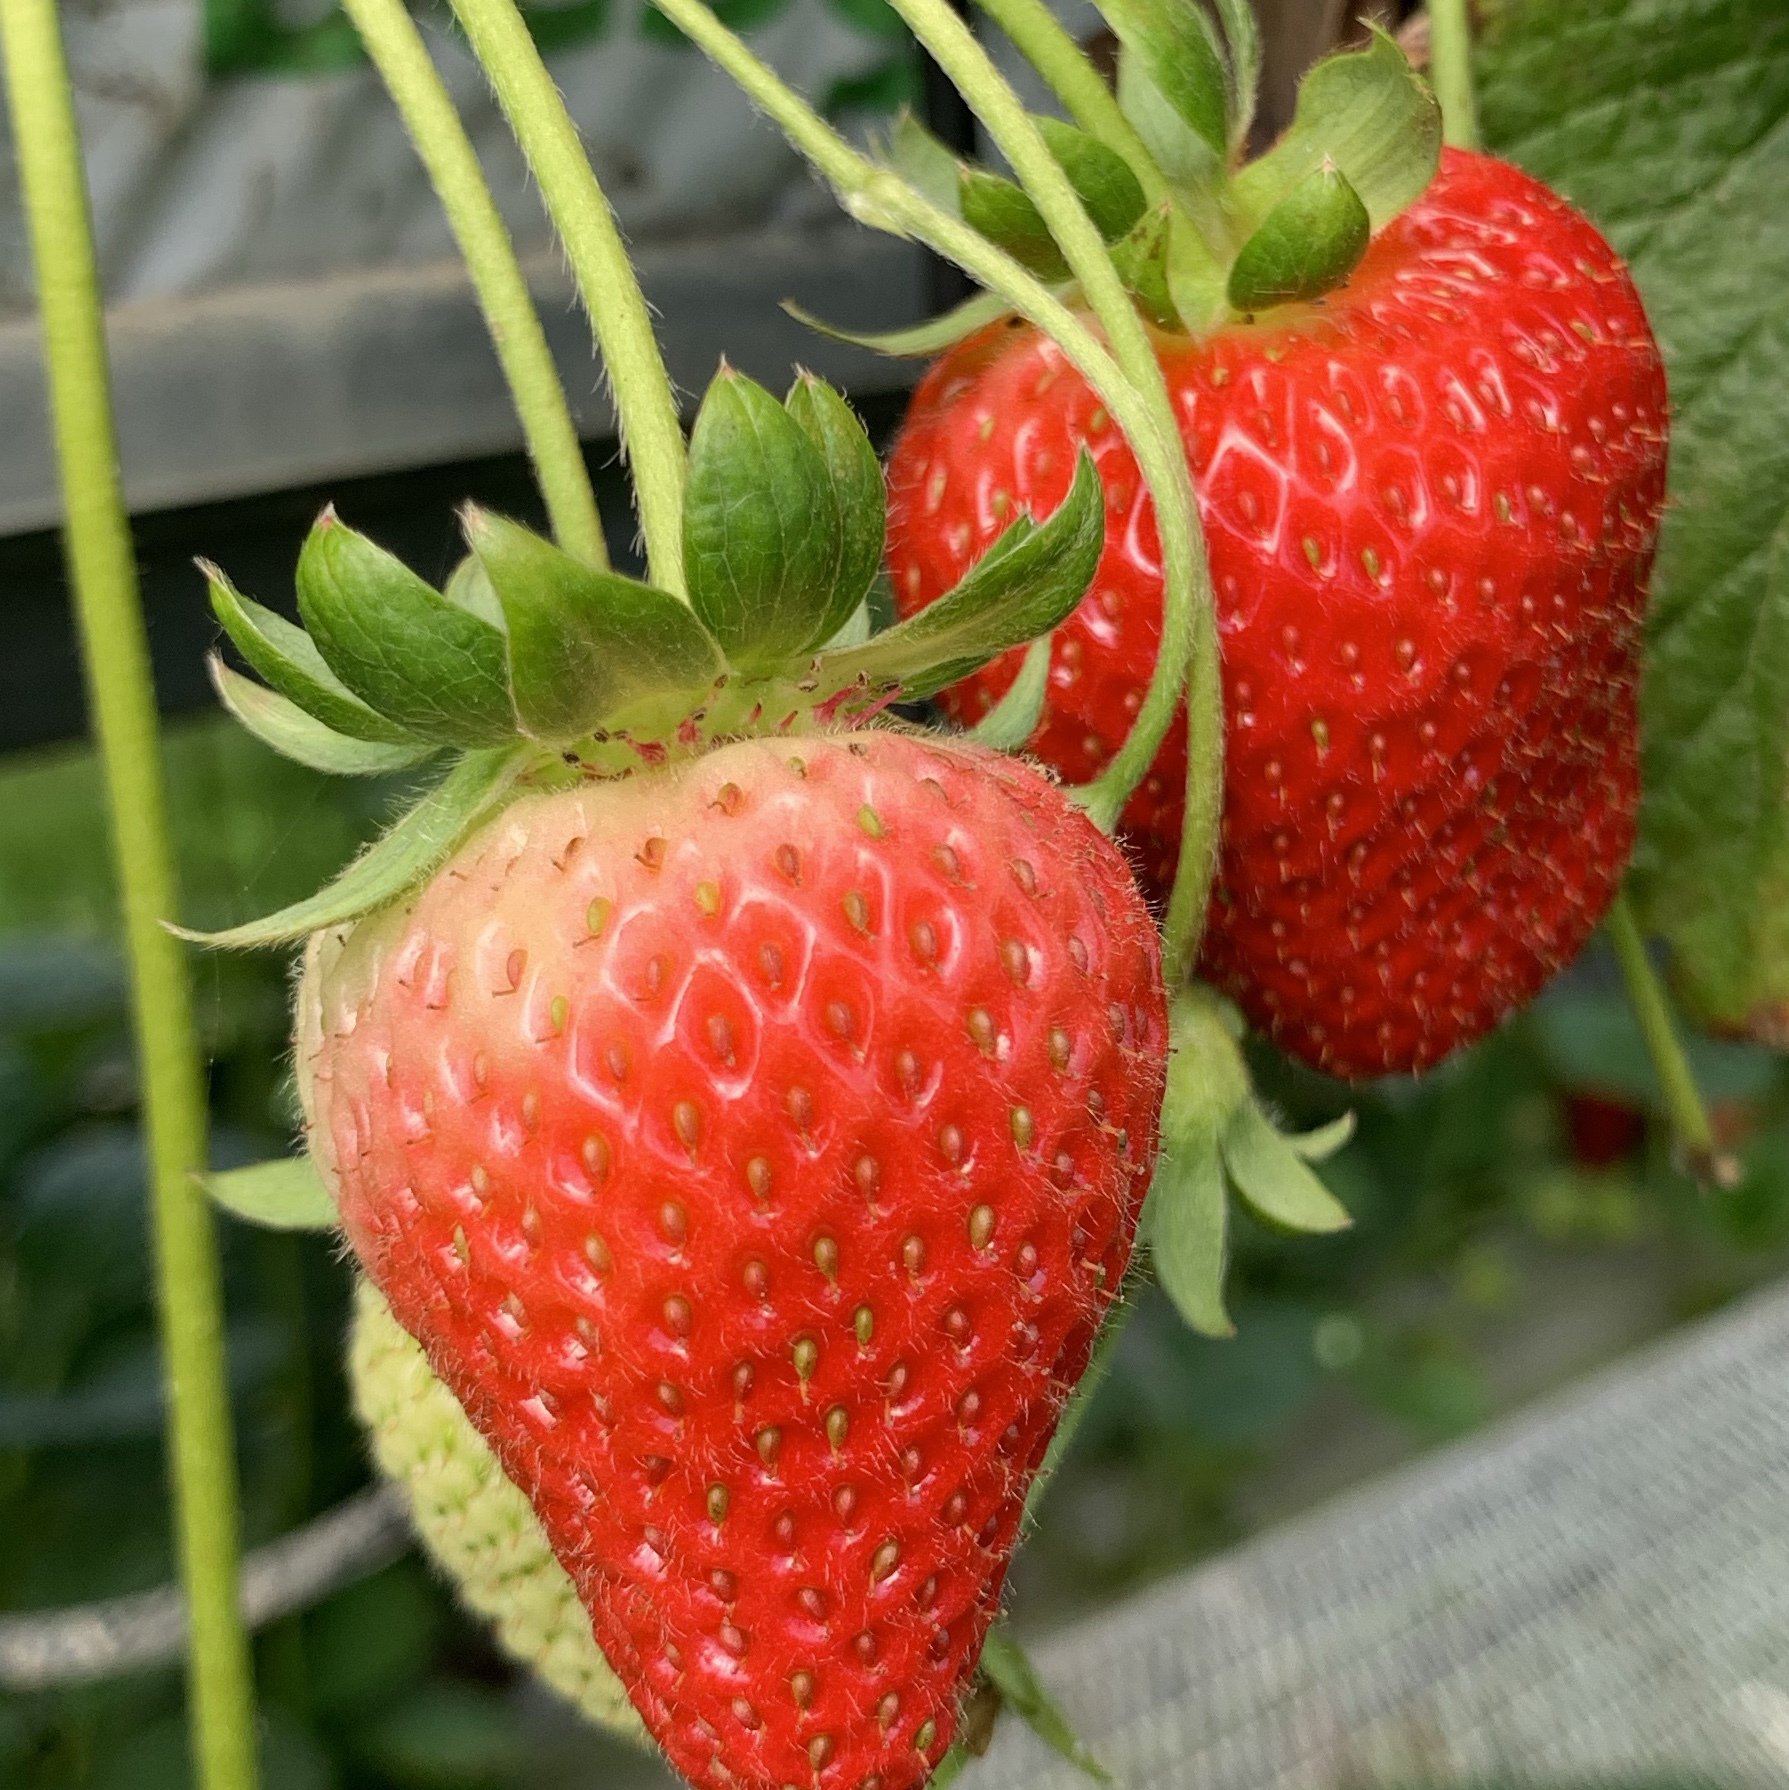 Strawberries on the plant at the pick-your-own farm